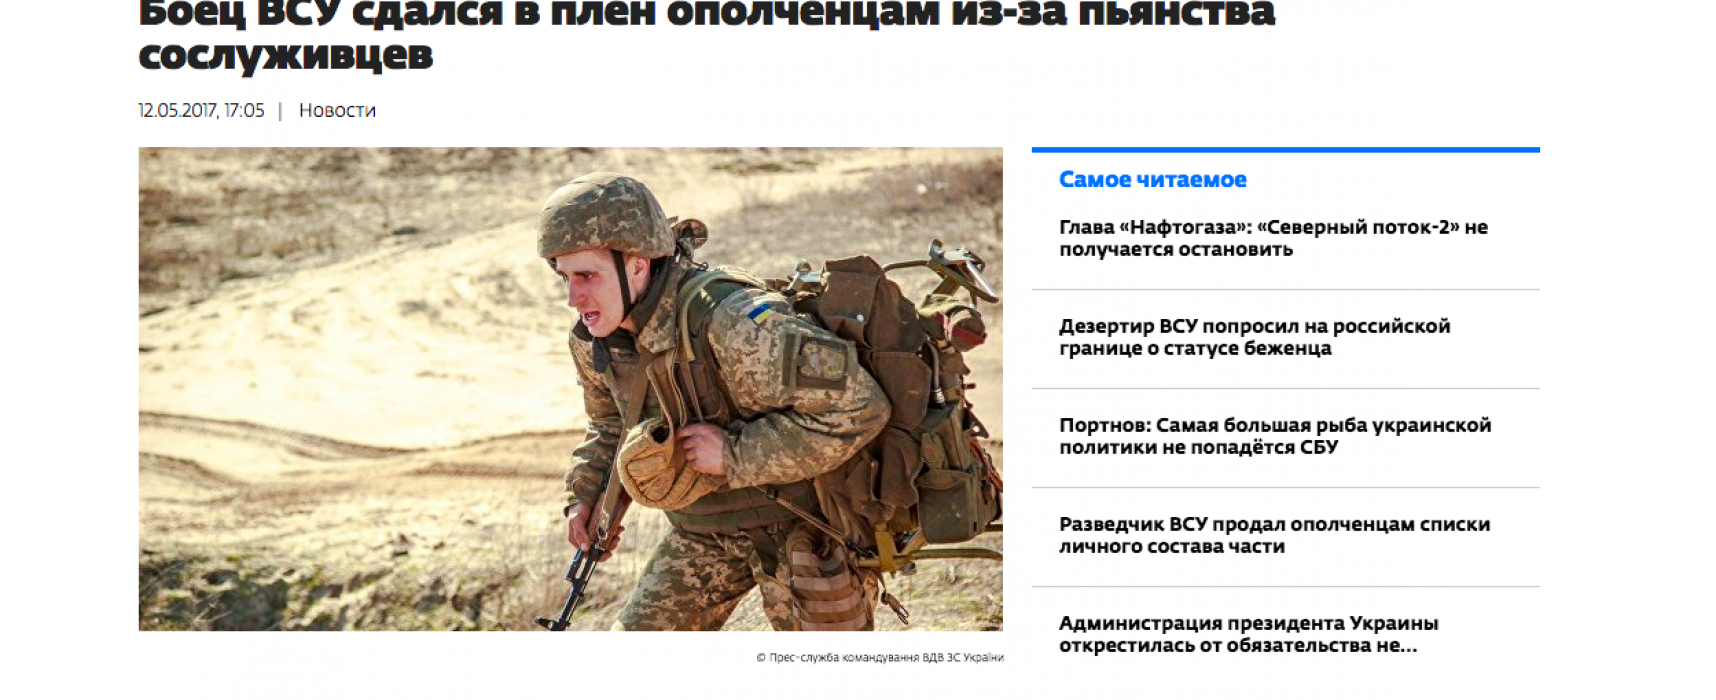 Fake: Ukrainian Soldier Willingly Joins Separatists